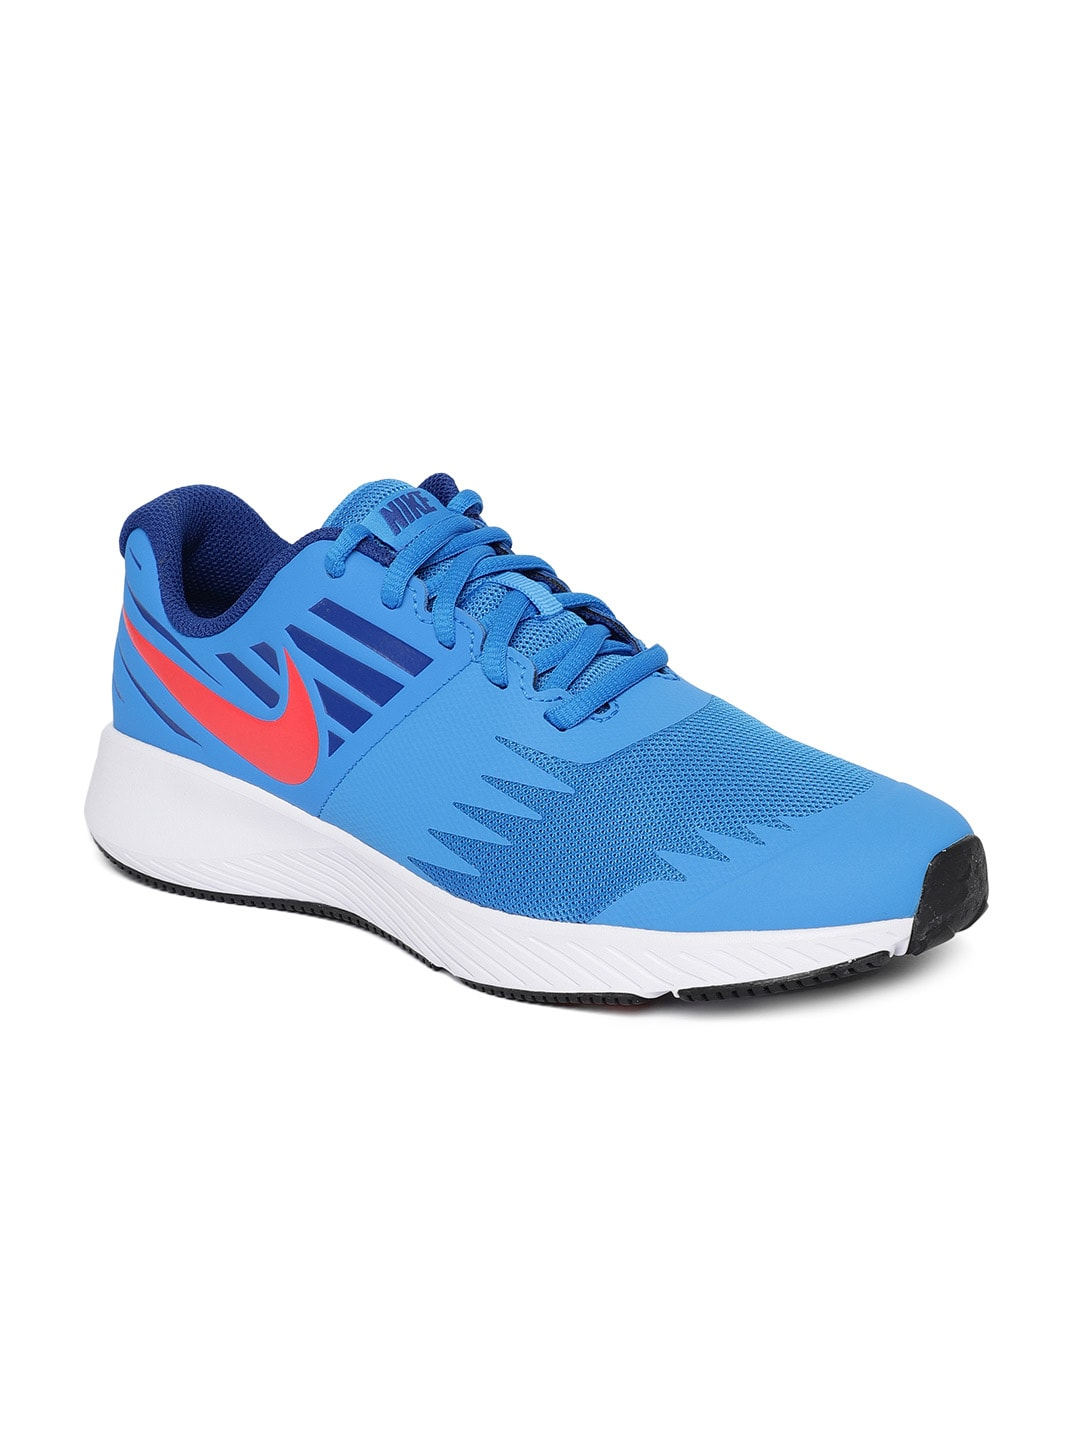 dfea5f122f6 Boys Sports Shoes - Buy Sports Shoes For Kids Online in India